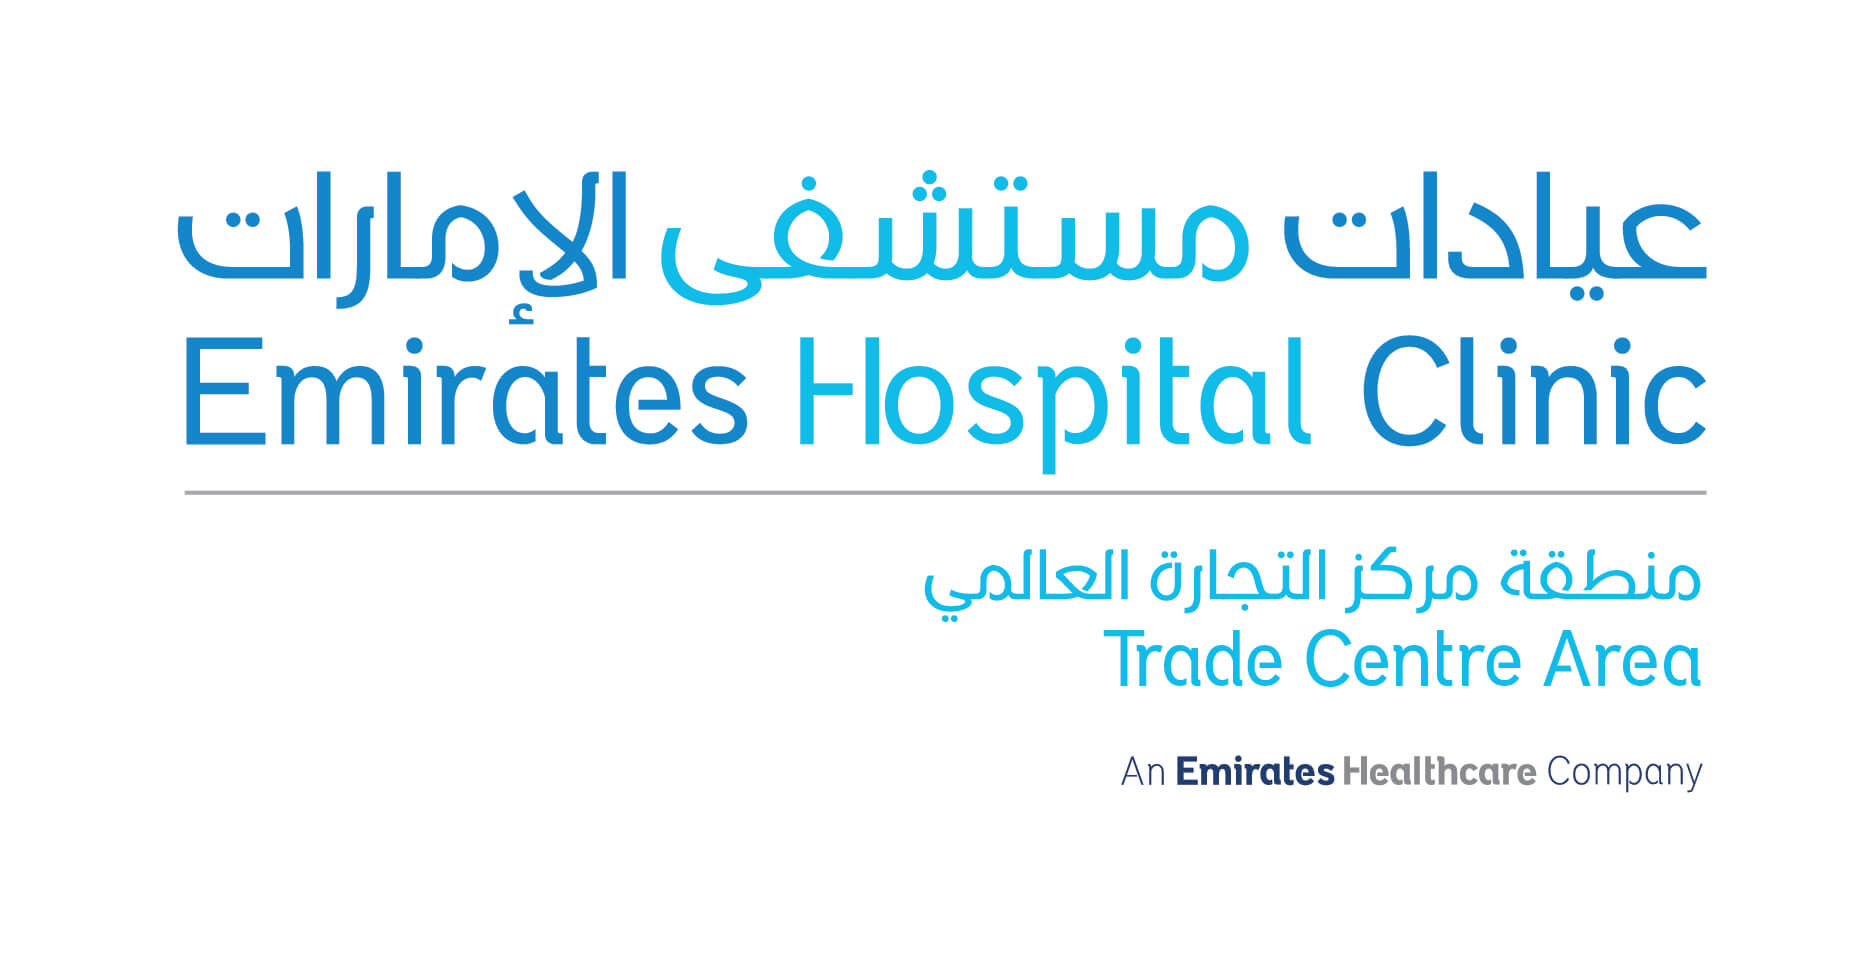 Trade Centre Clinic - Emirates Hospital